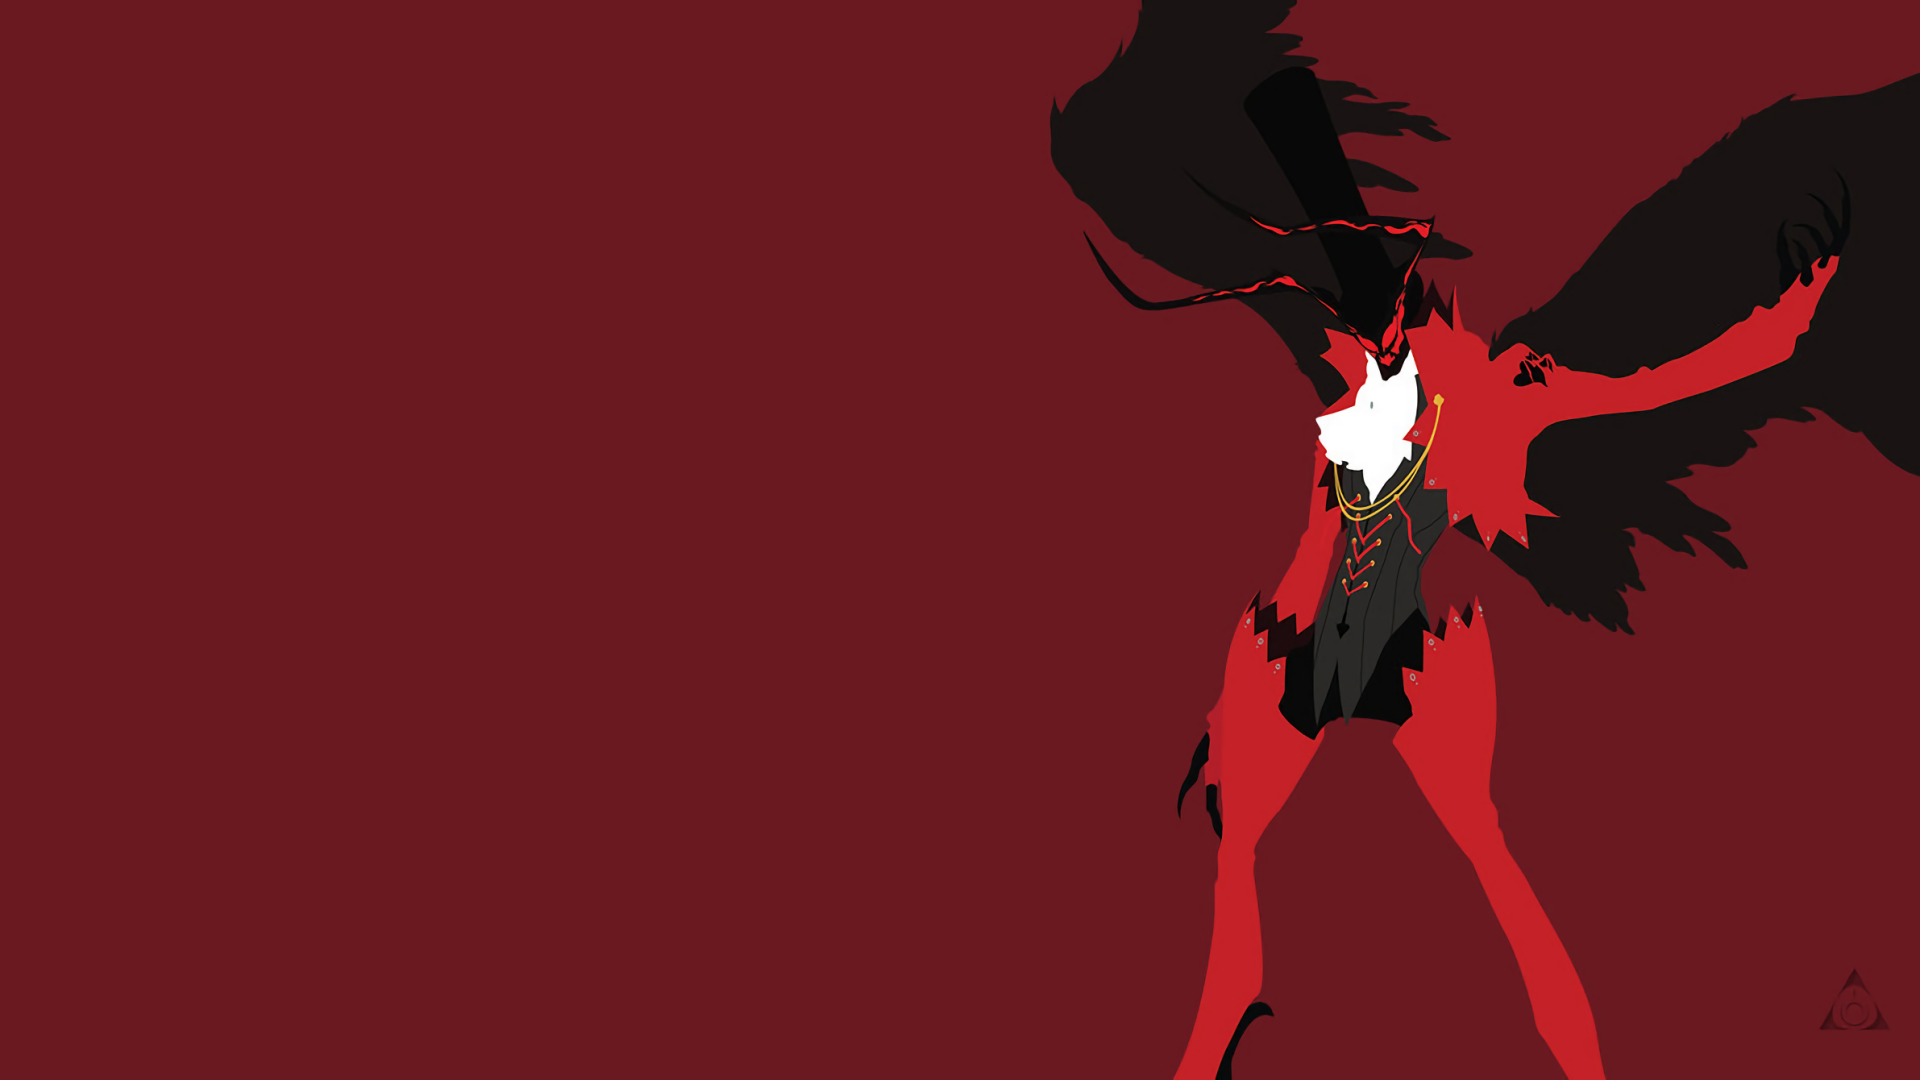 6 Persona 5 Hd Wallpapers Background Images Wallpaper Abyss